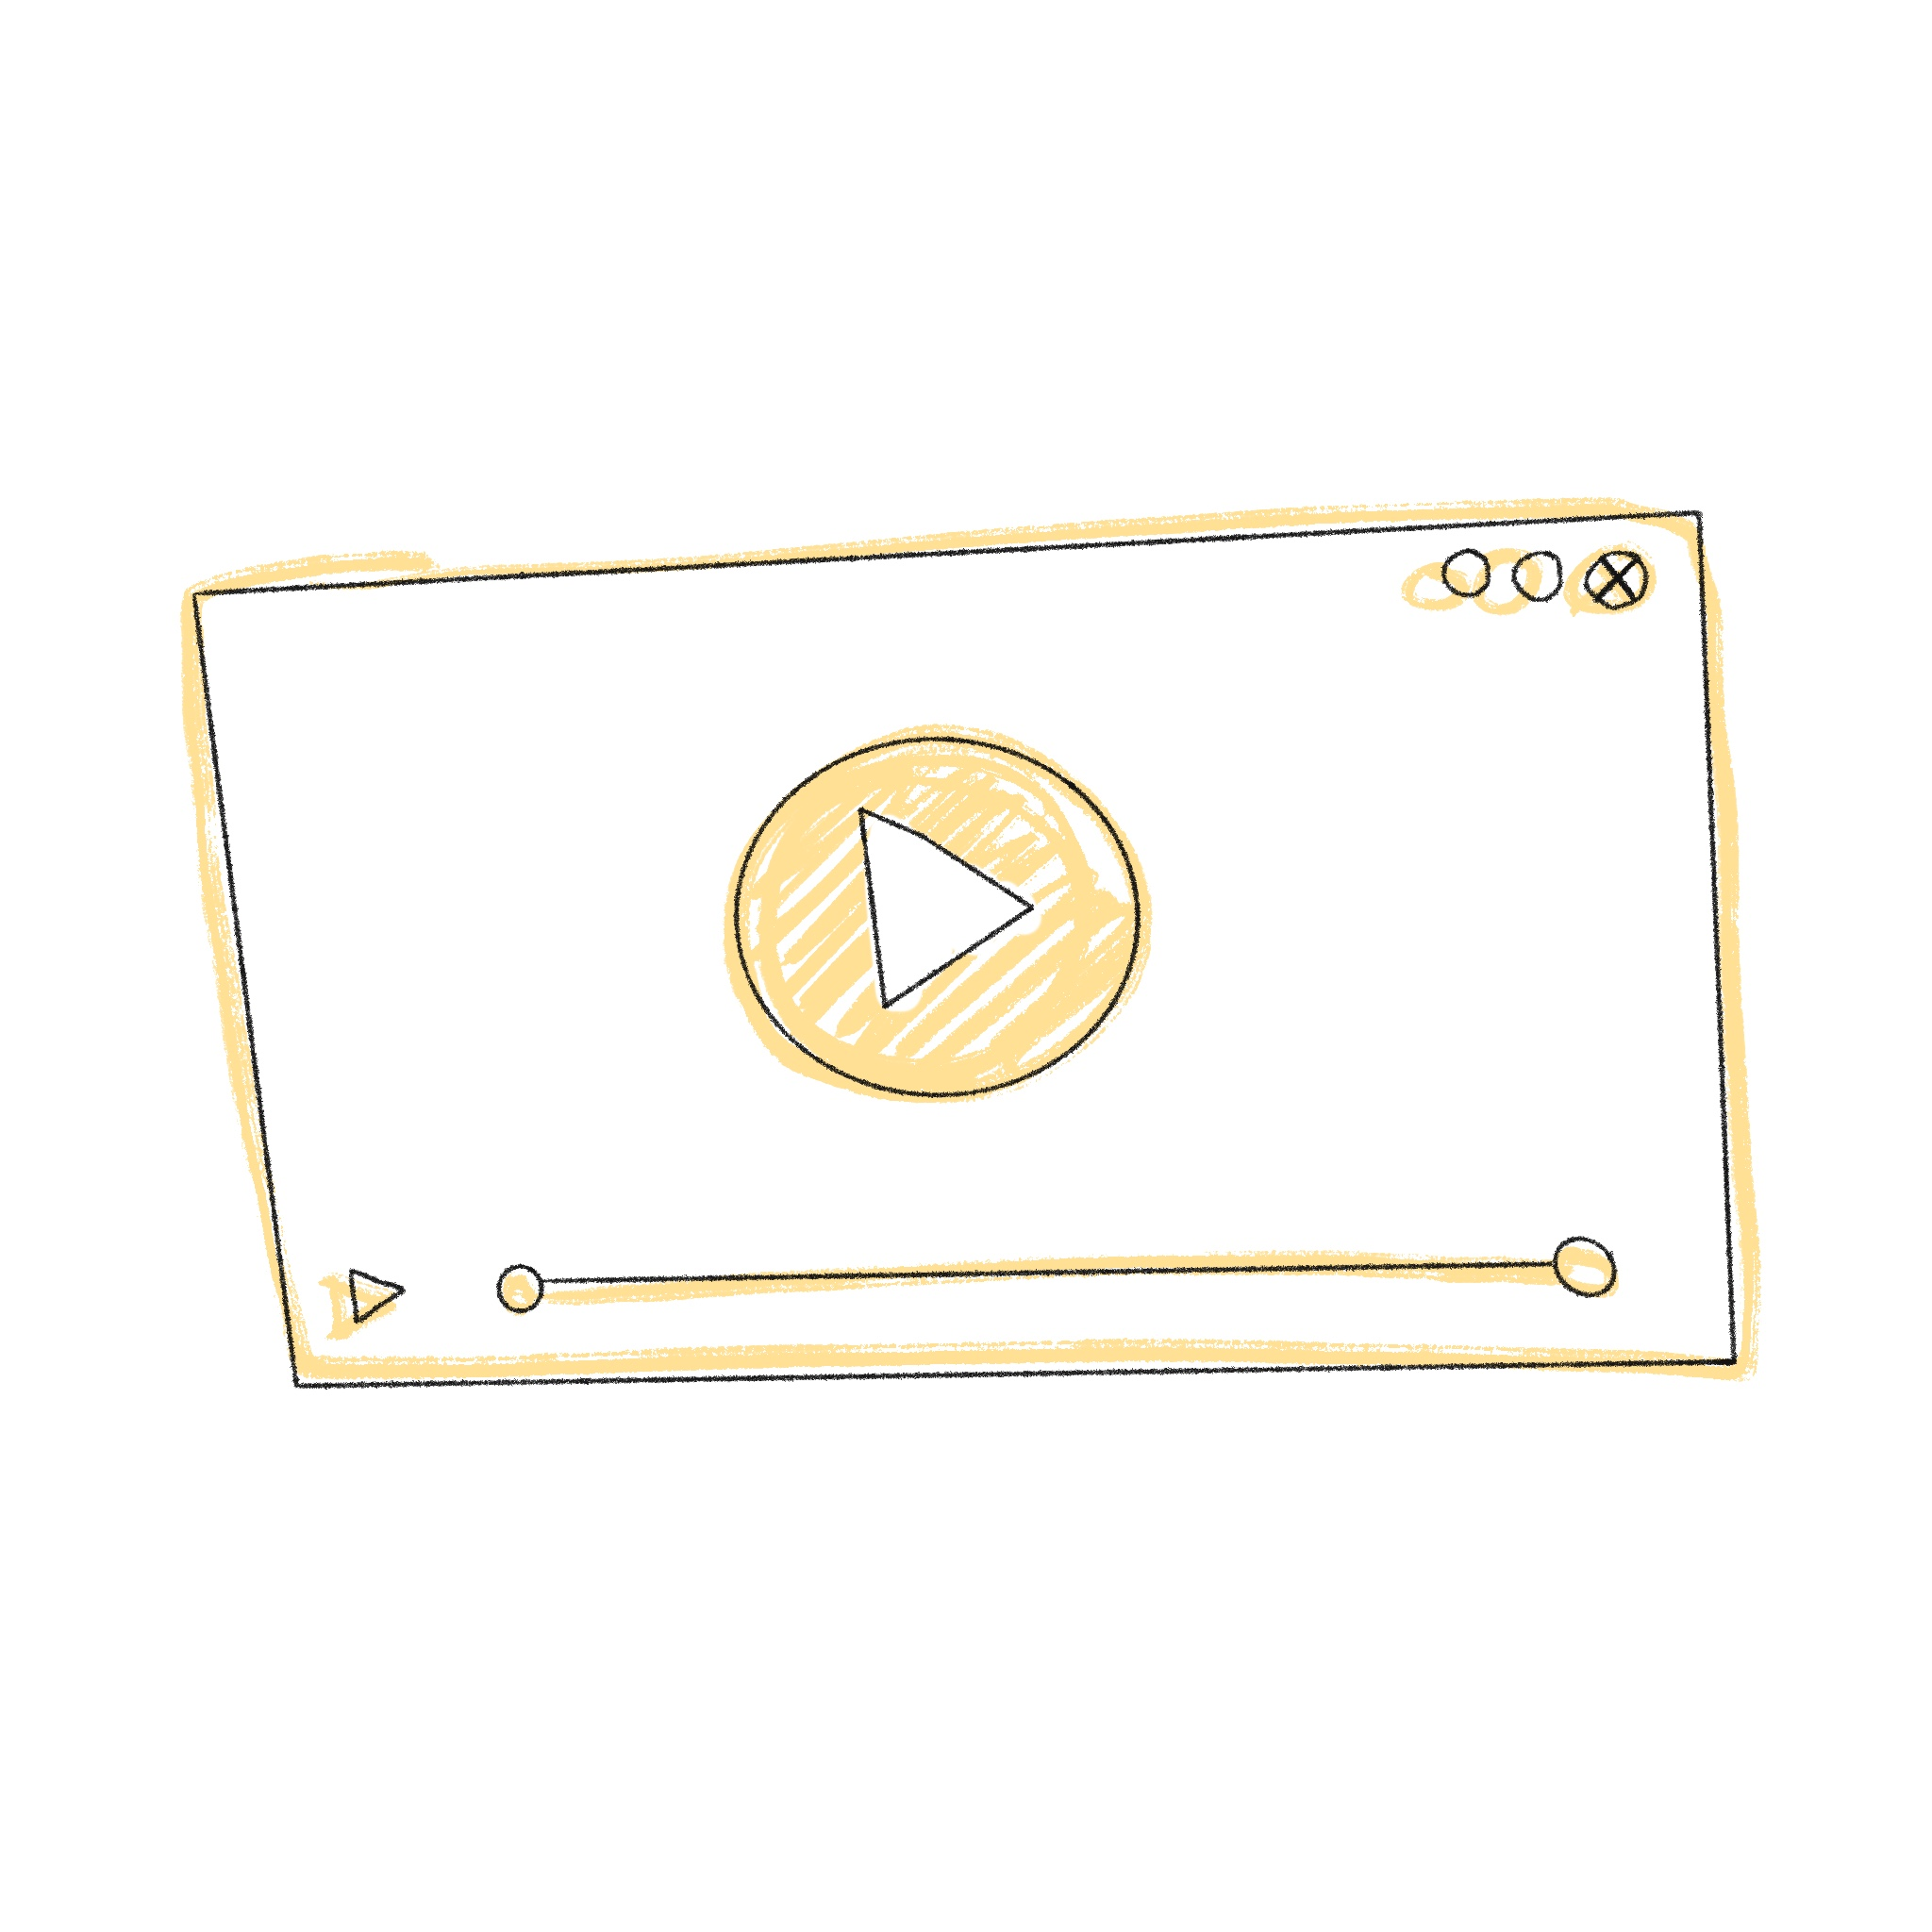 Video thumbnail drawing with play button